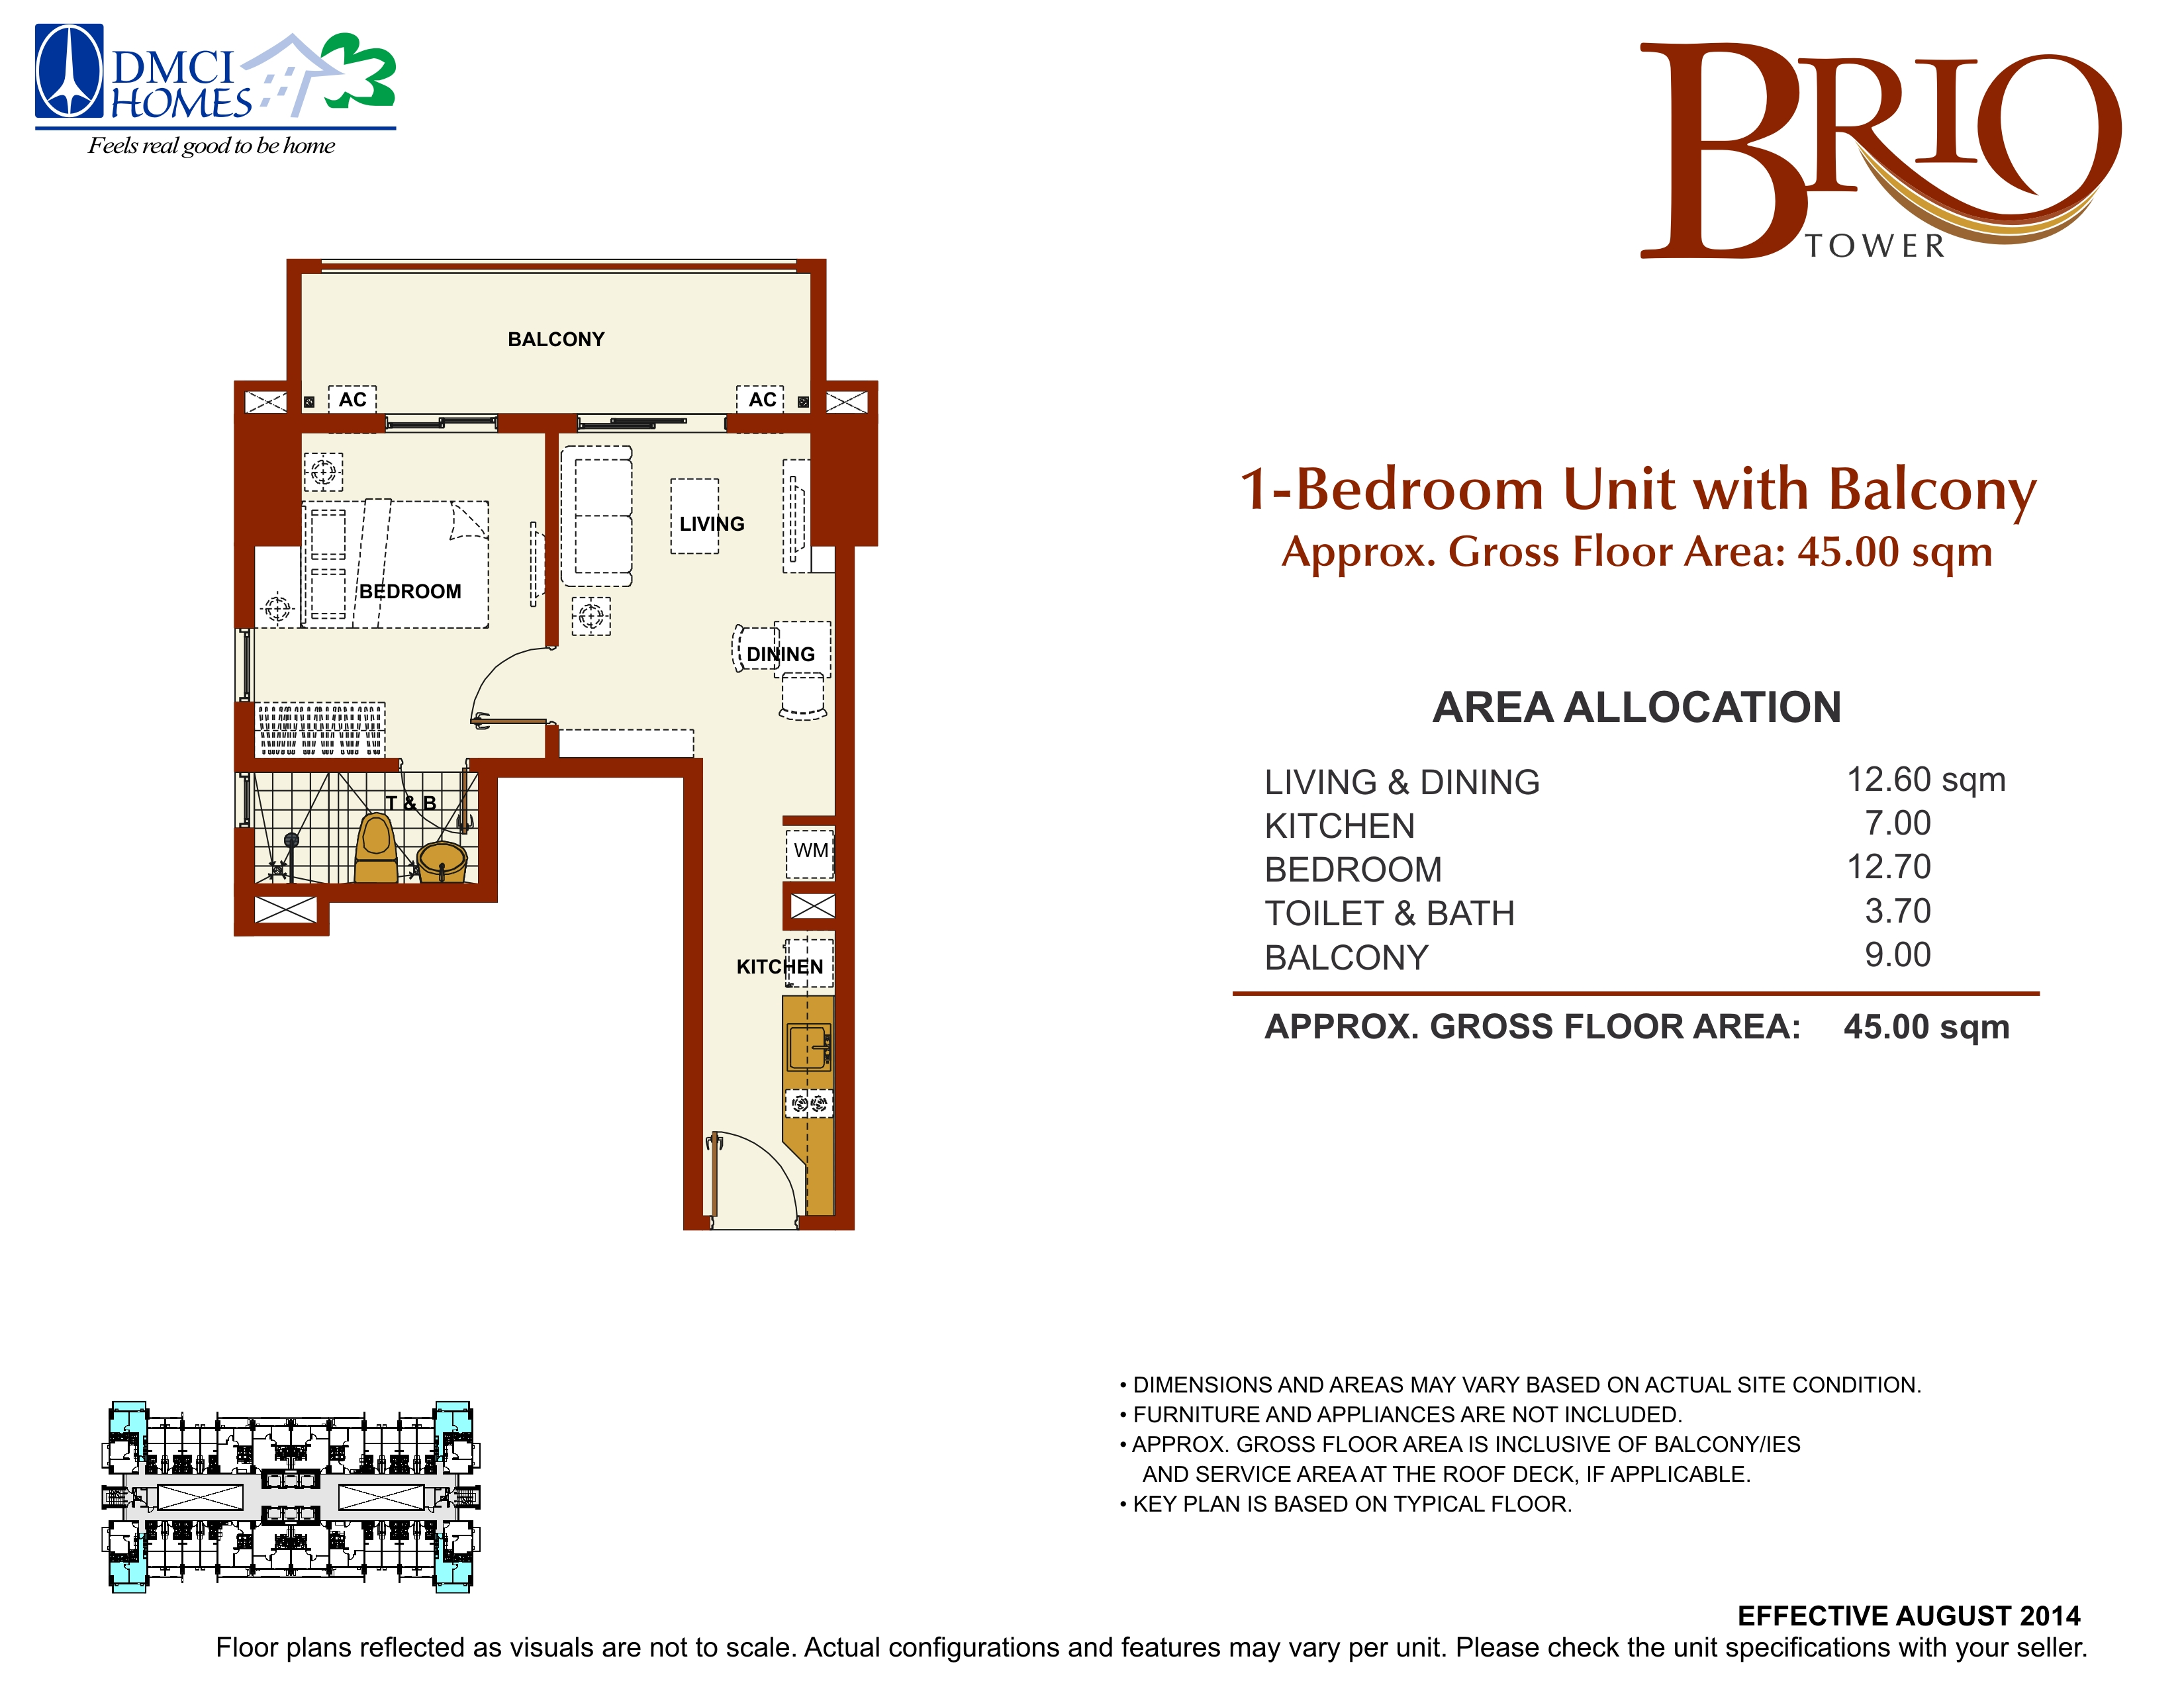 brio-tower-1br-unit-with-balcony-3